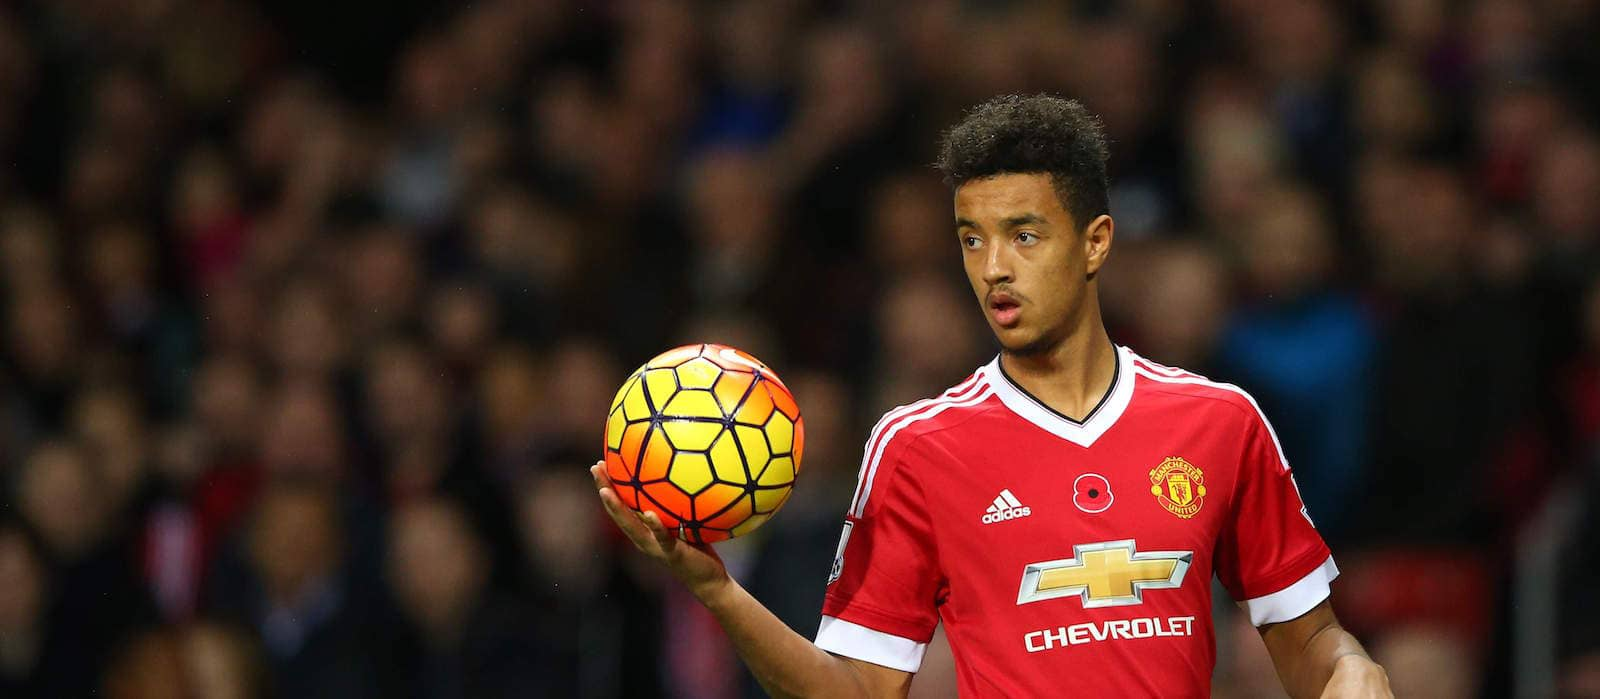 Cameron Borthwick-Jackson to be recalled by Manchester United